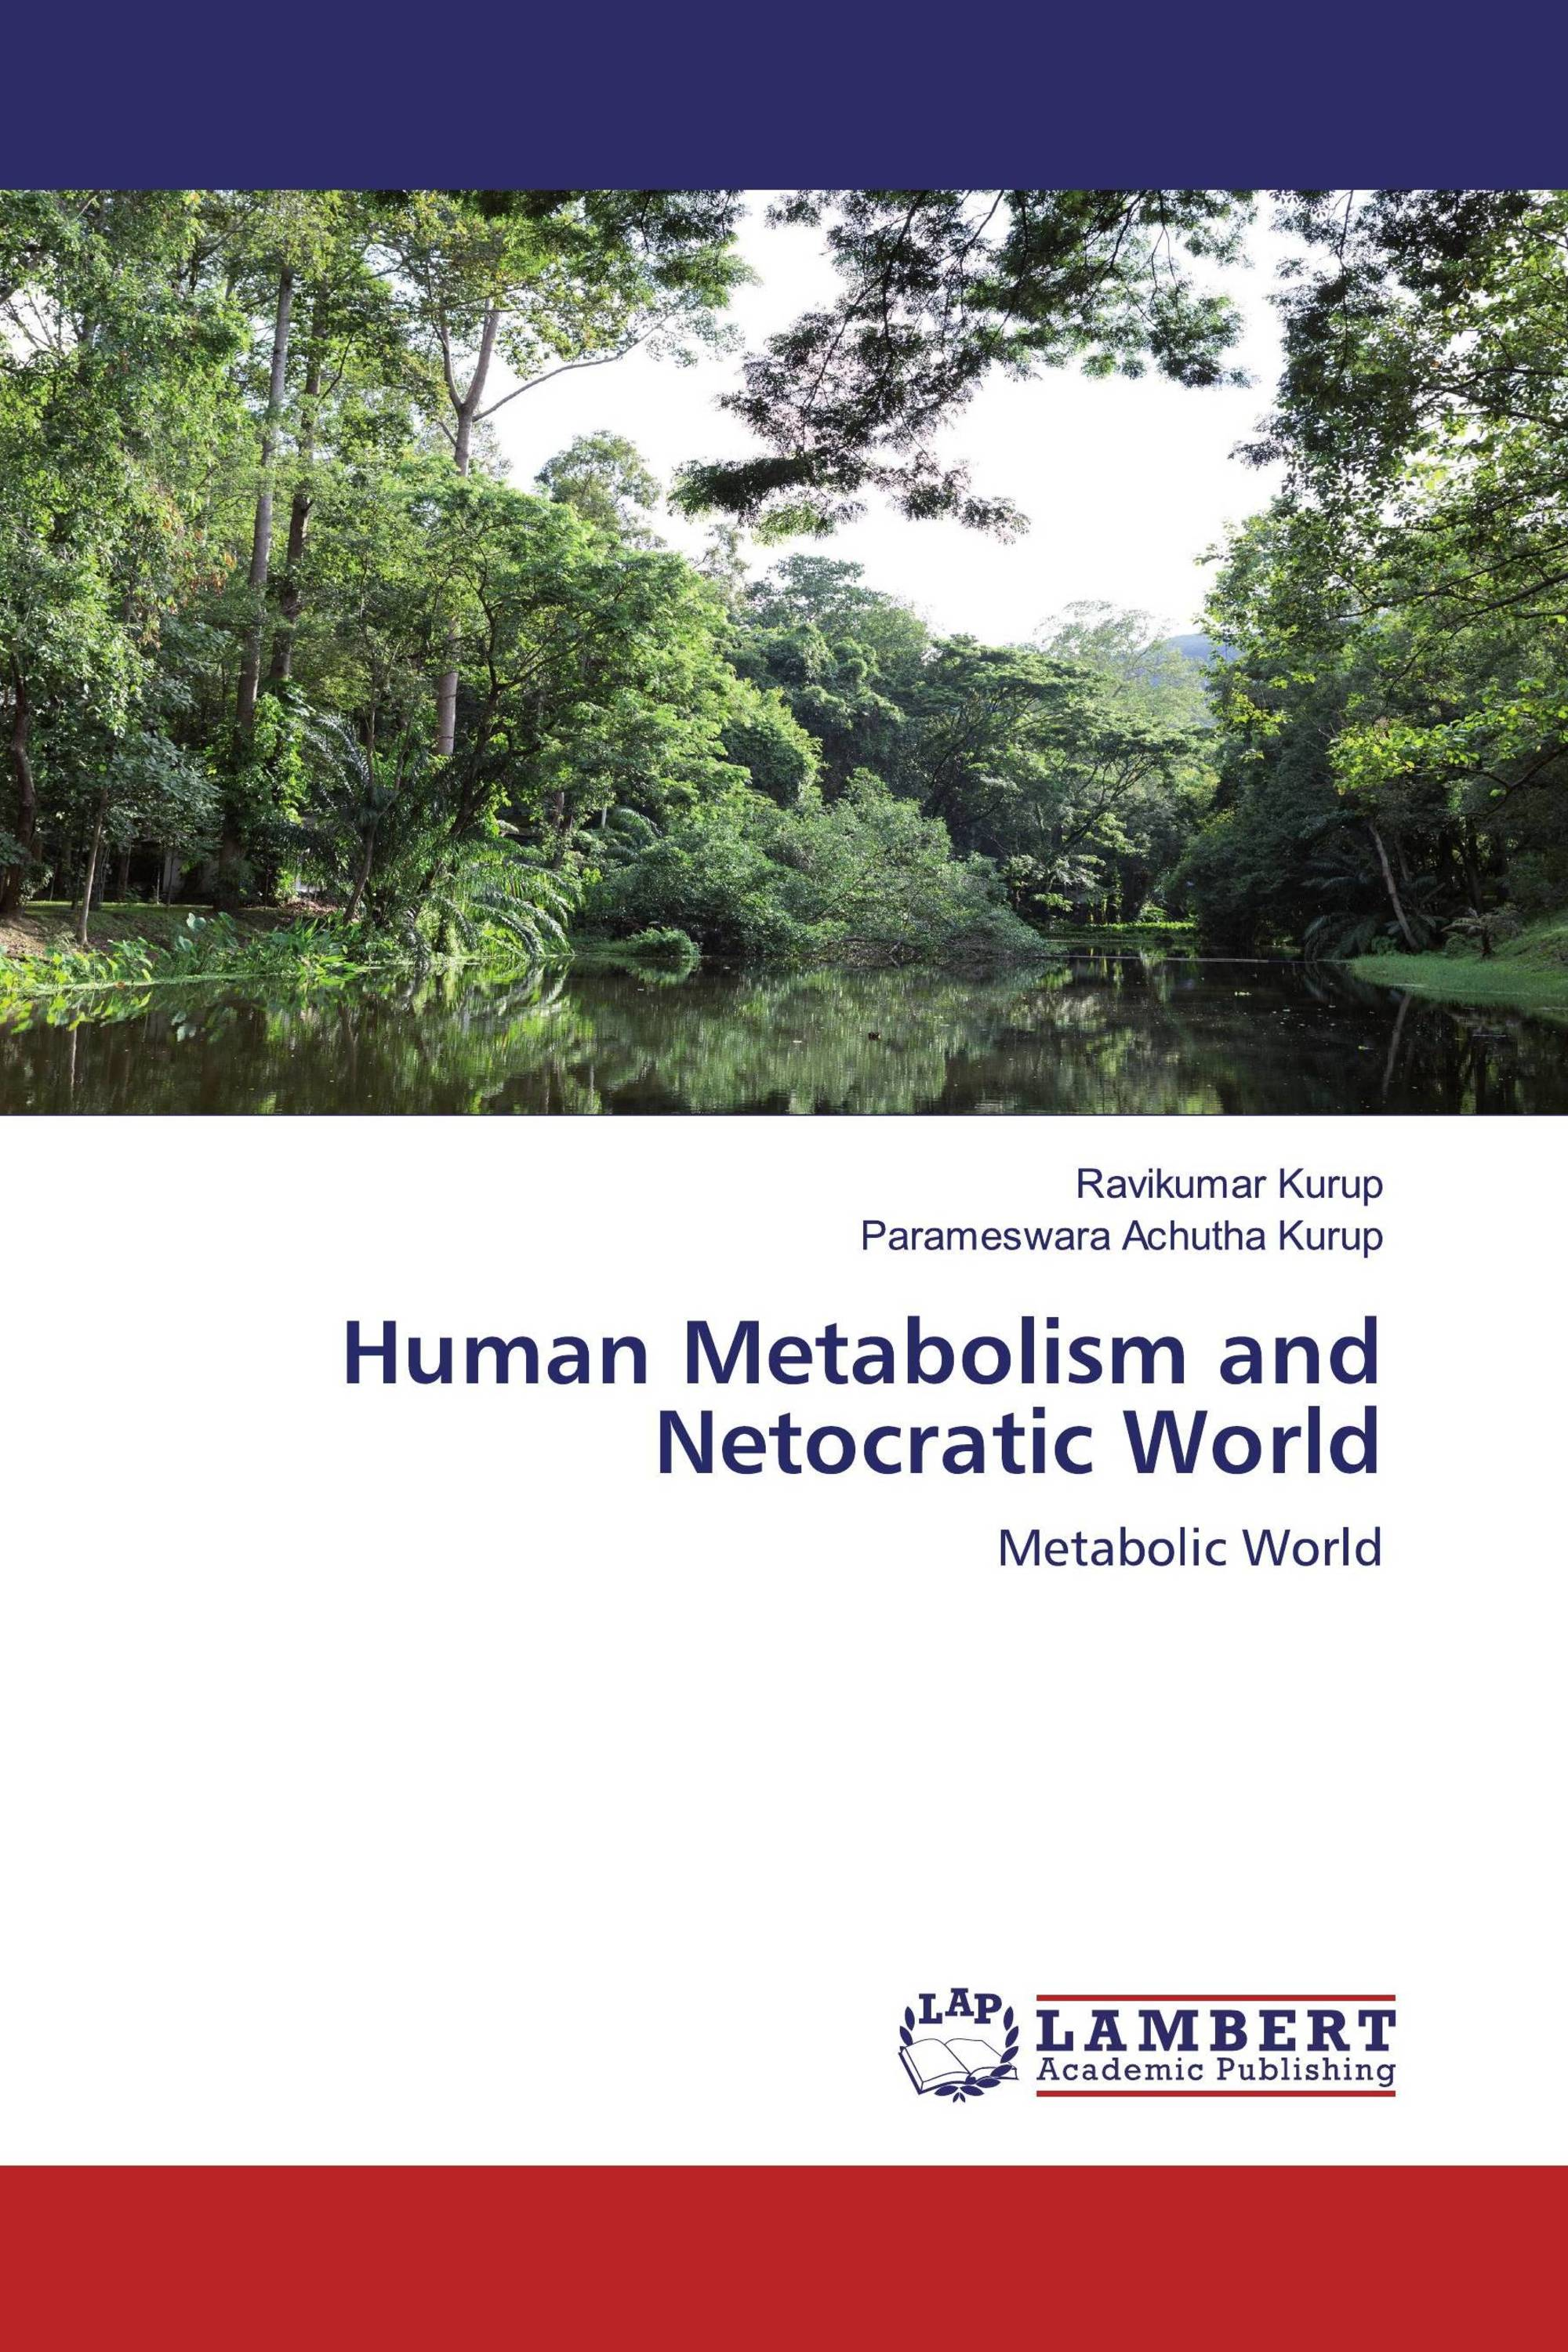 Human Metabolism and Netocratic World